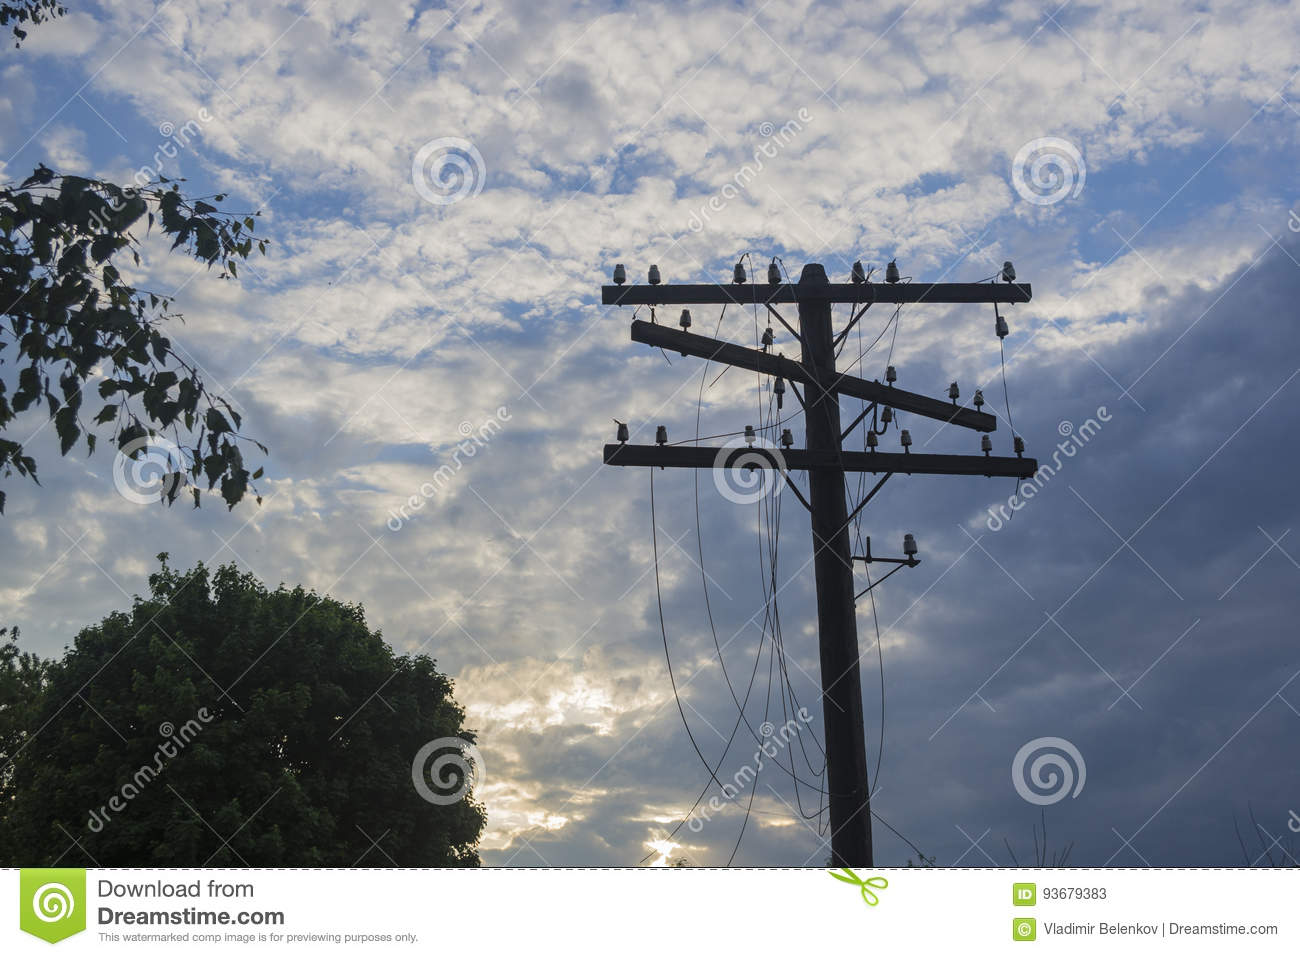 A Telegraph Pole With Torn Wires Stock Image - Image of industrial ...